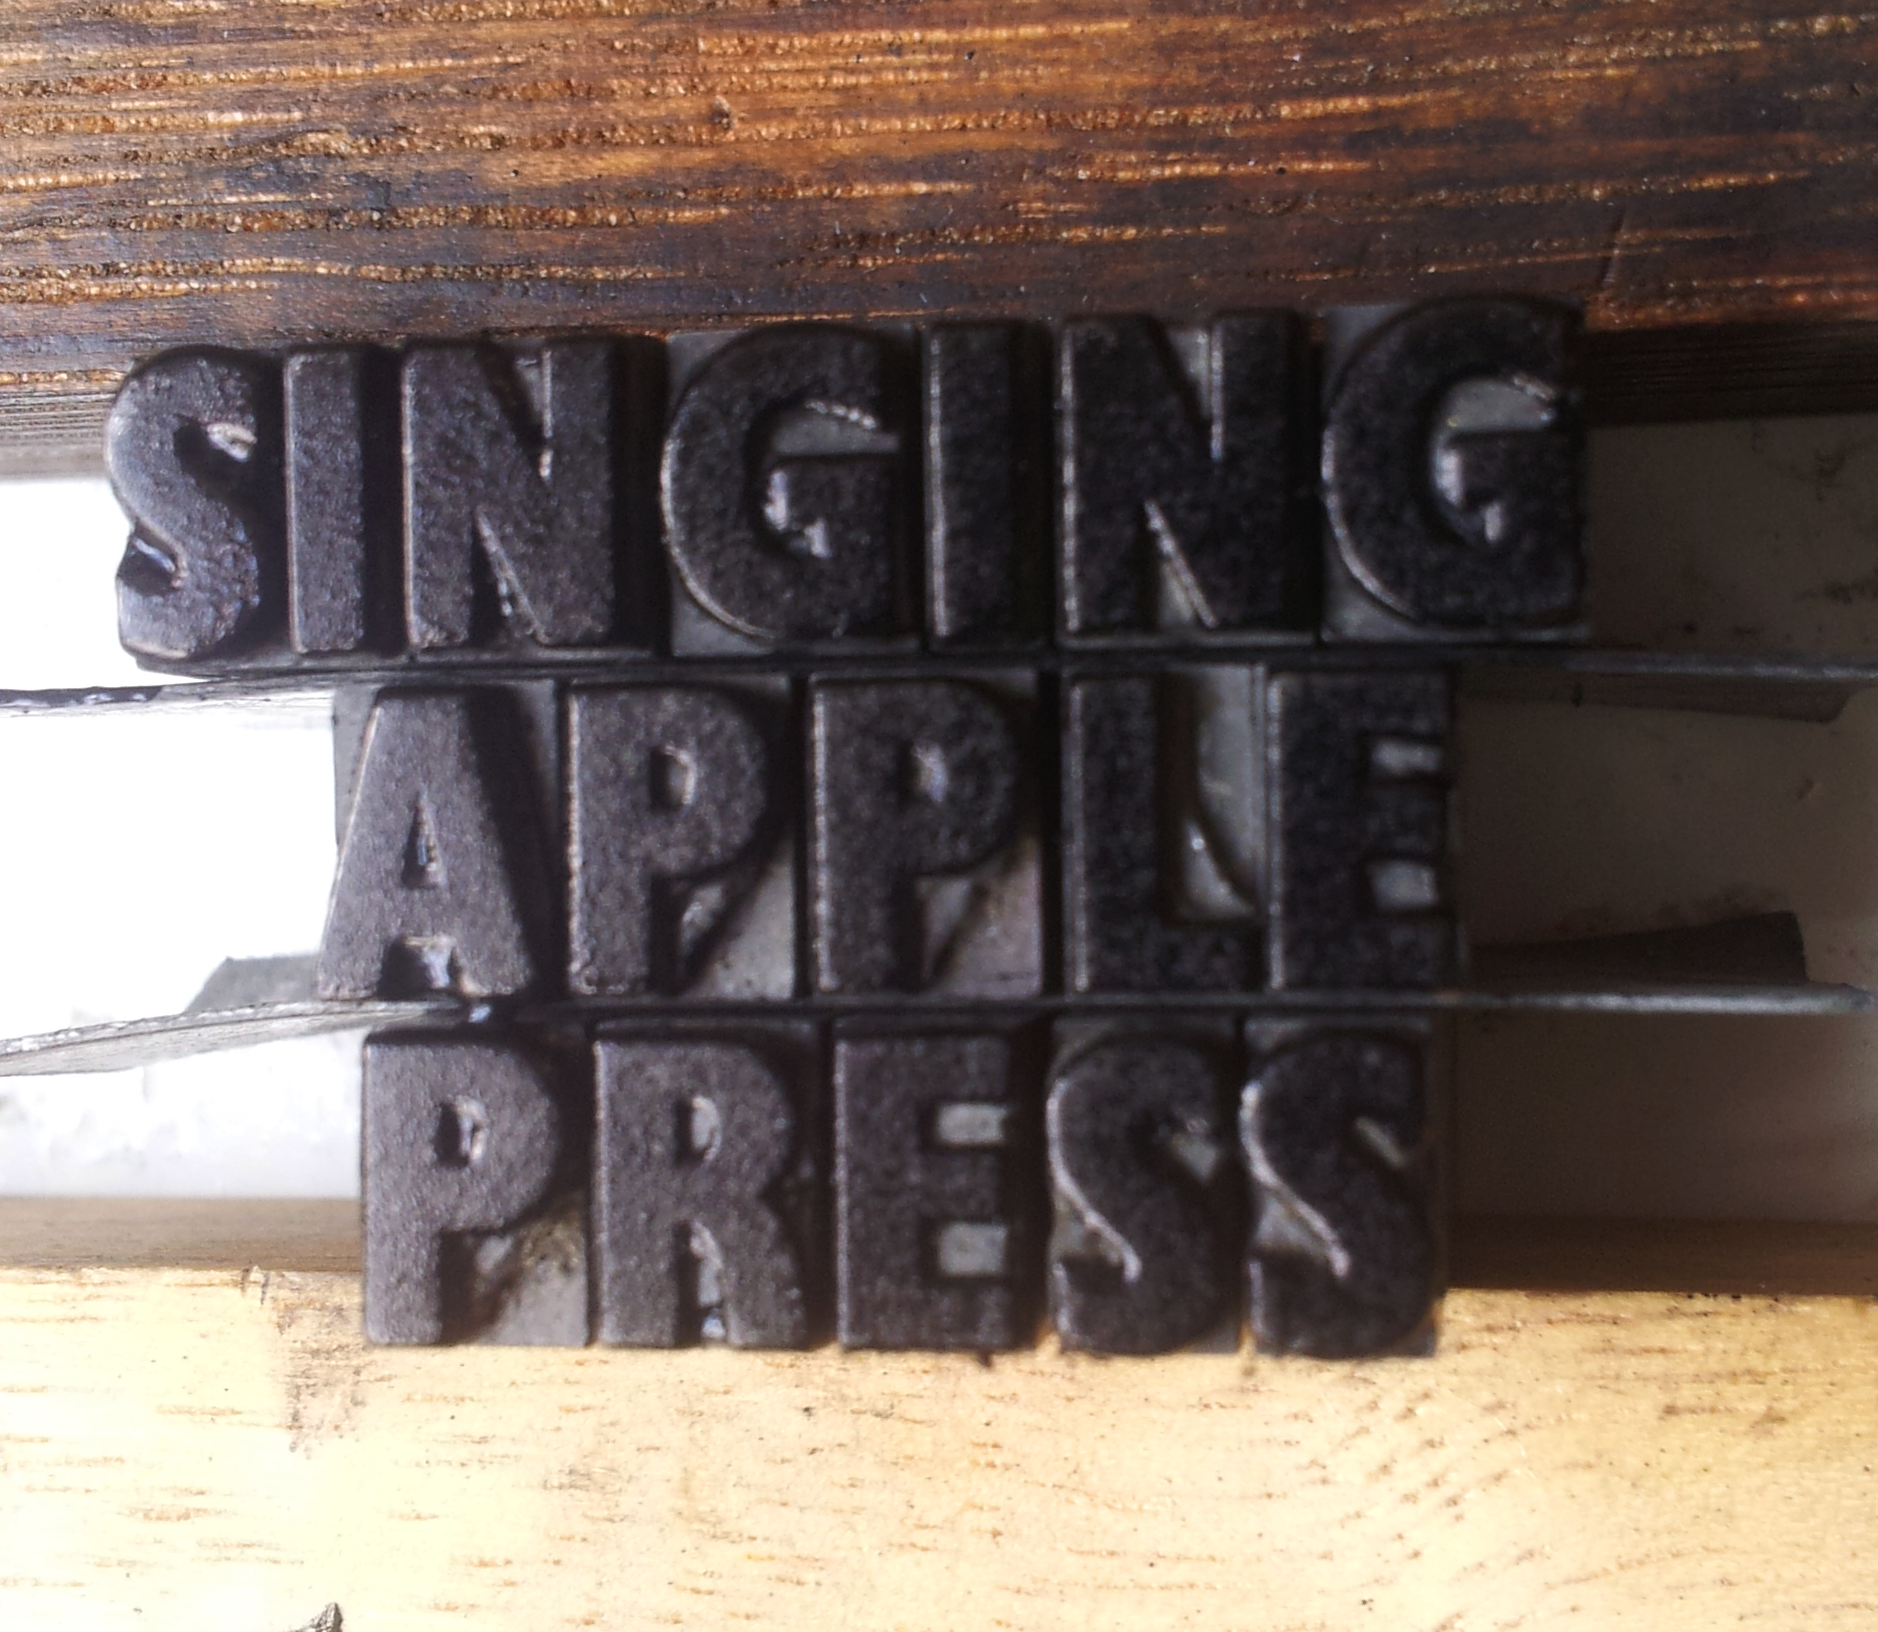 Image by Singing Apple Press